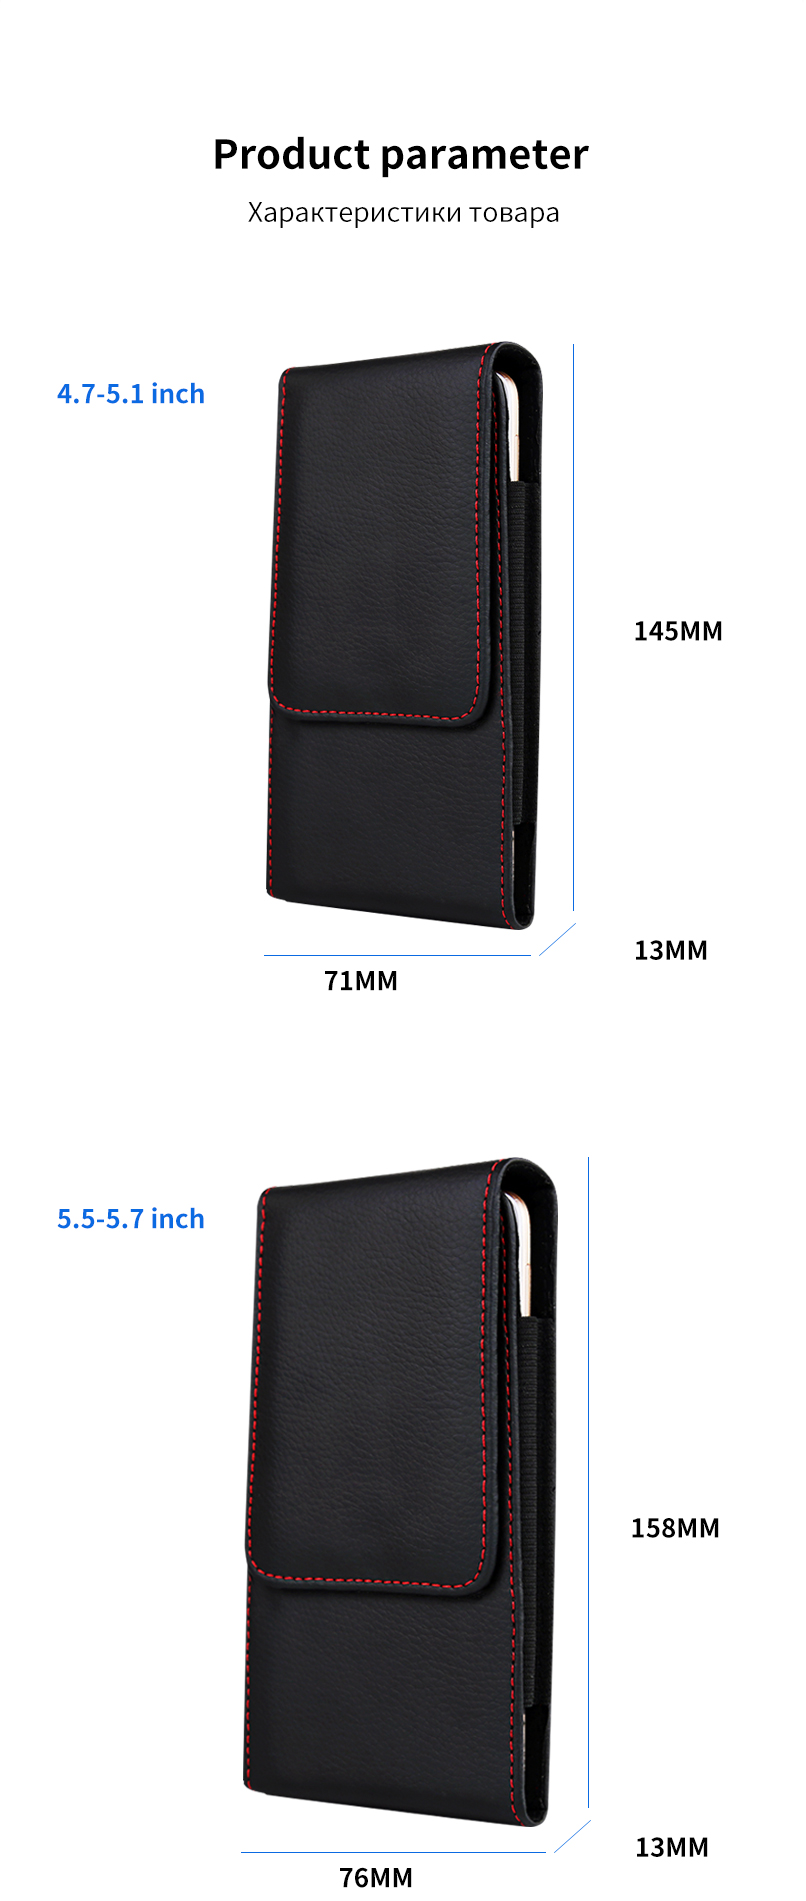 Casual Leather Phone Case With Holster Bag Belt For All Mobile Phones 8